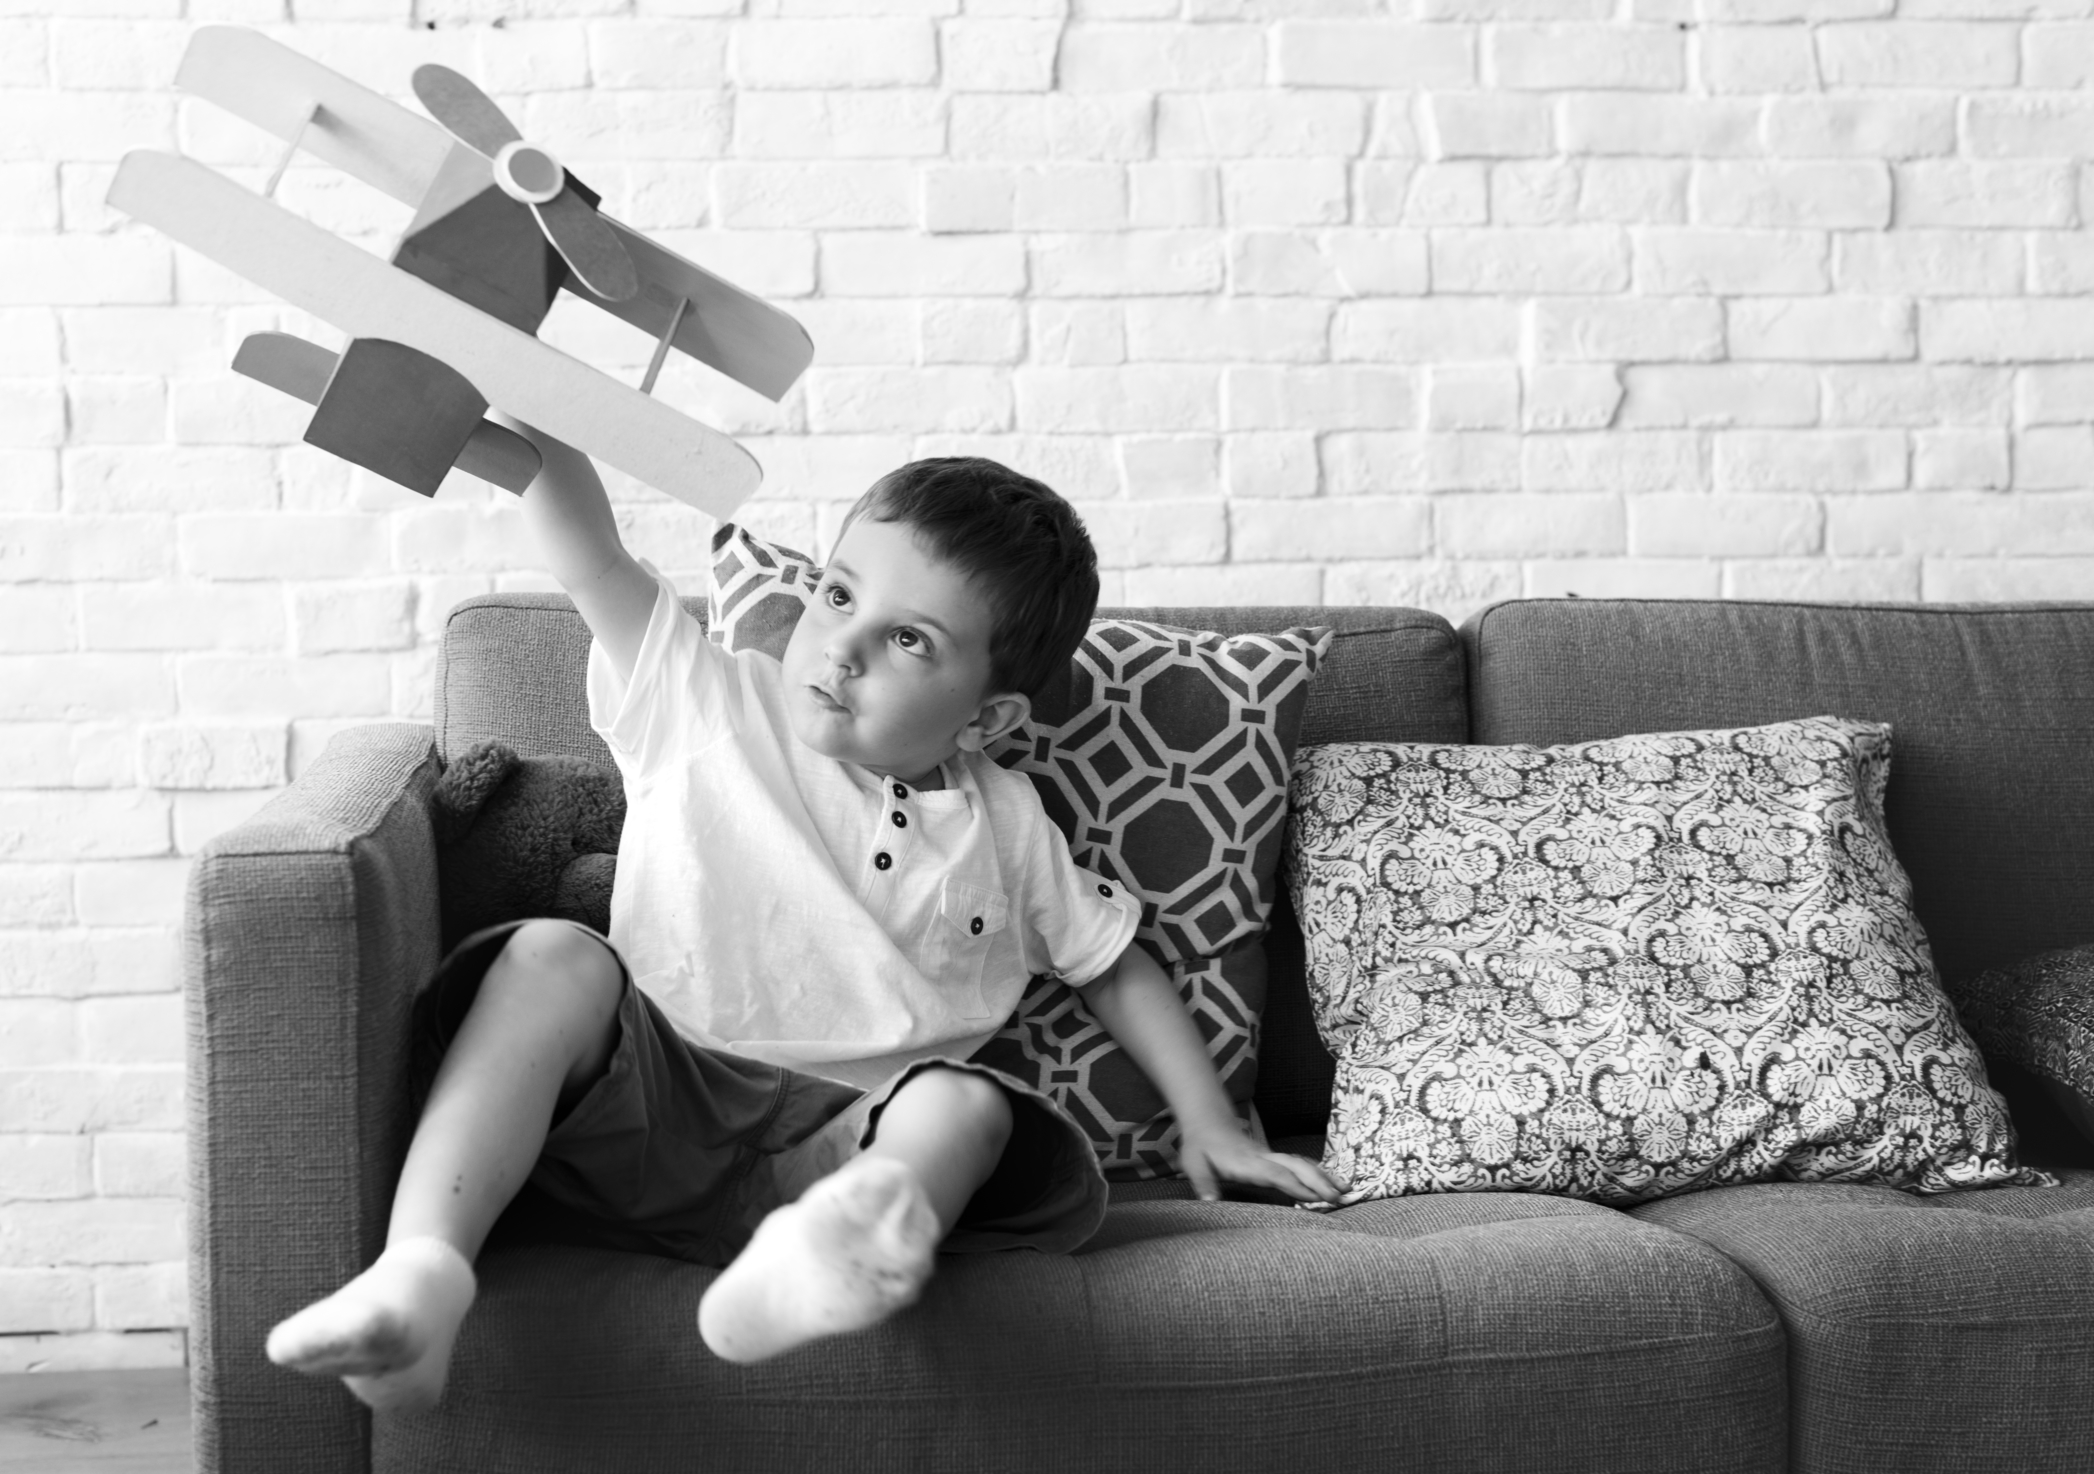 Boy Playing Plane Toy Aspiration